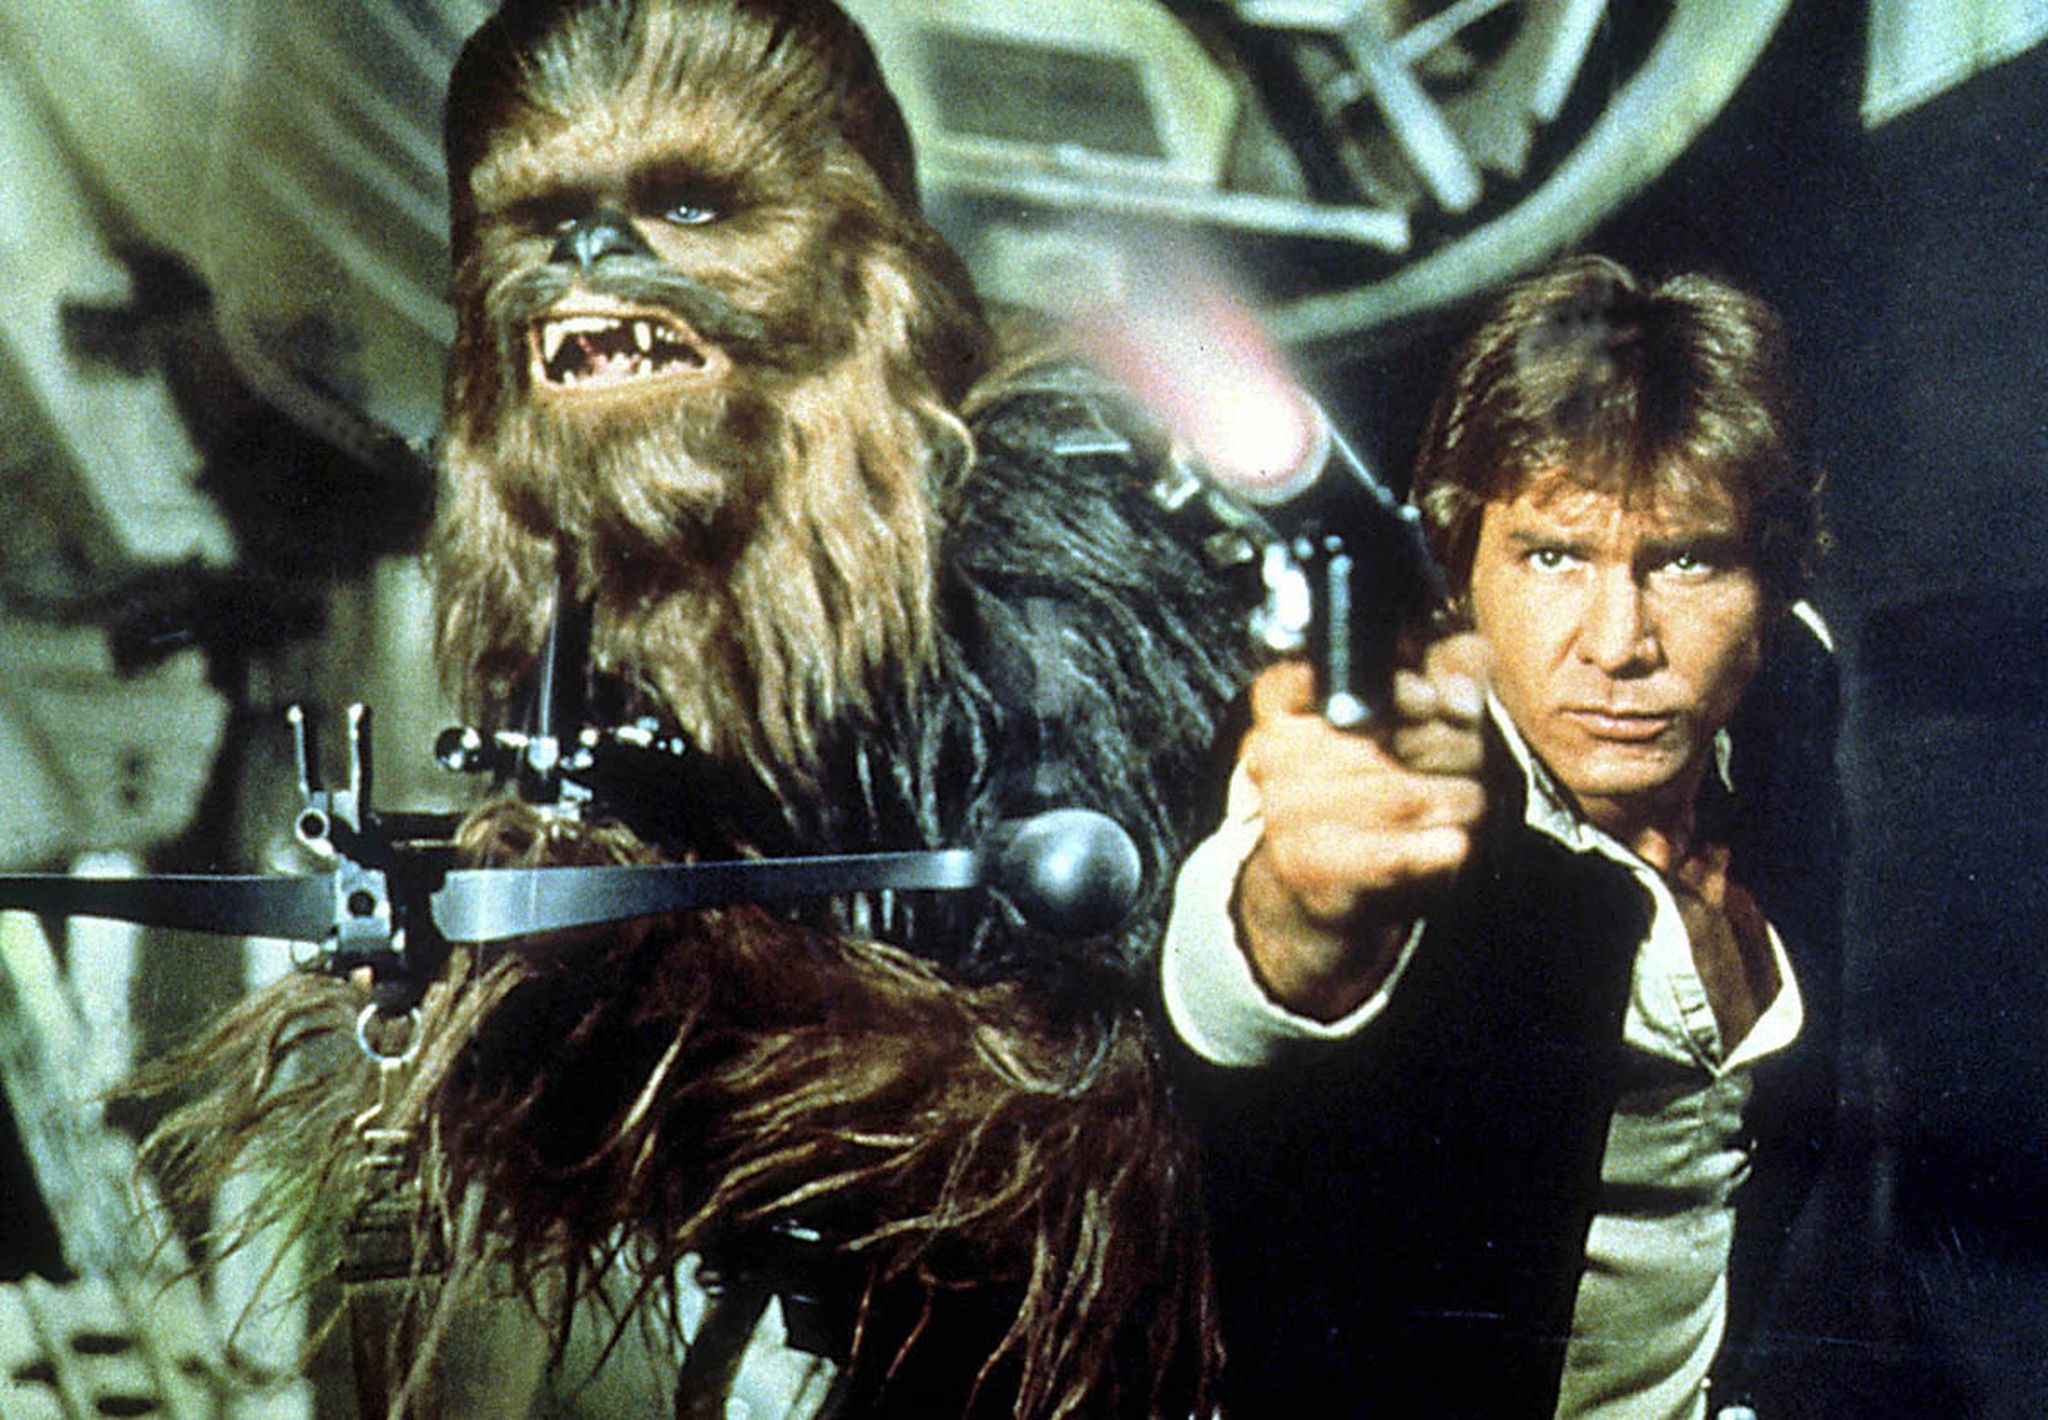 Peter Mayhew, 'Chewbacca' actor in 'Star Wars' films, dies at 74